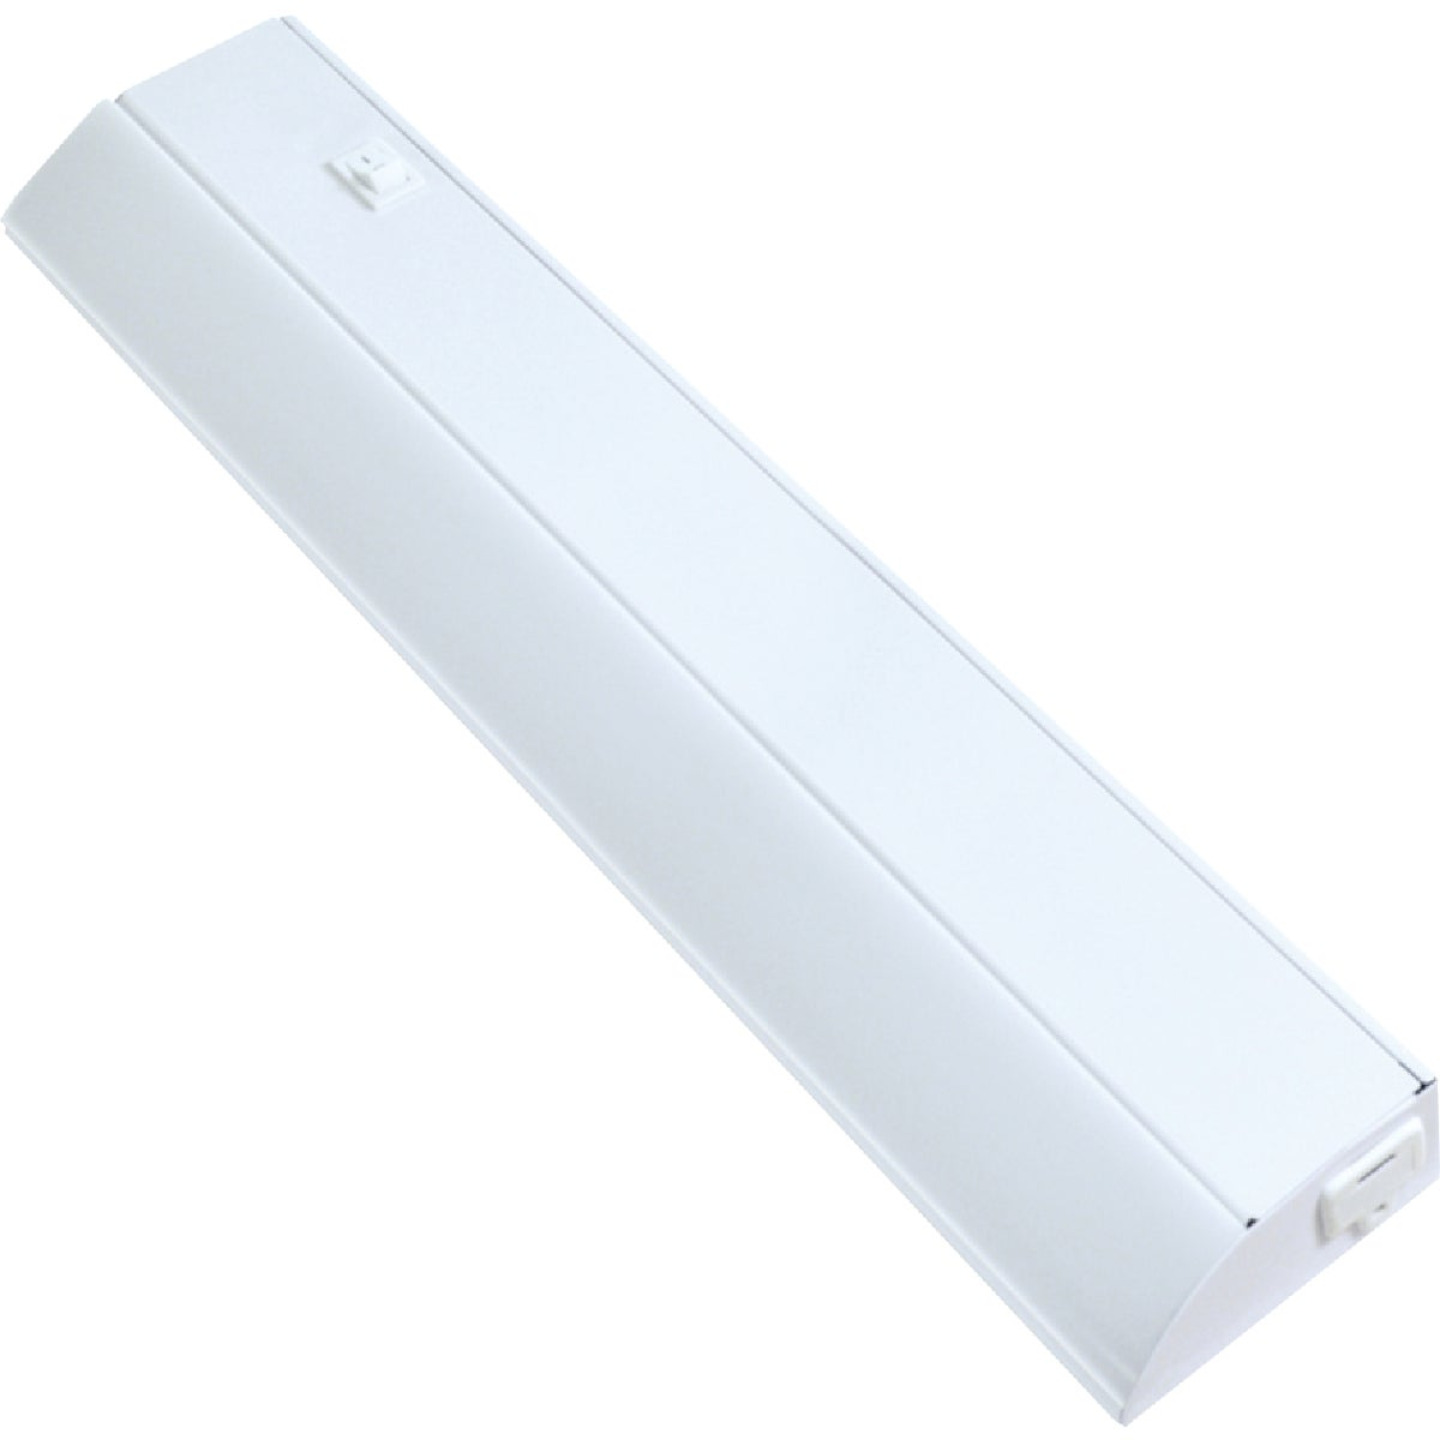 Good Earth Lighting Ecolight 18 In. Direct Wire White LED Under Cabinet Light Bar Image 1